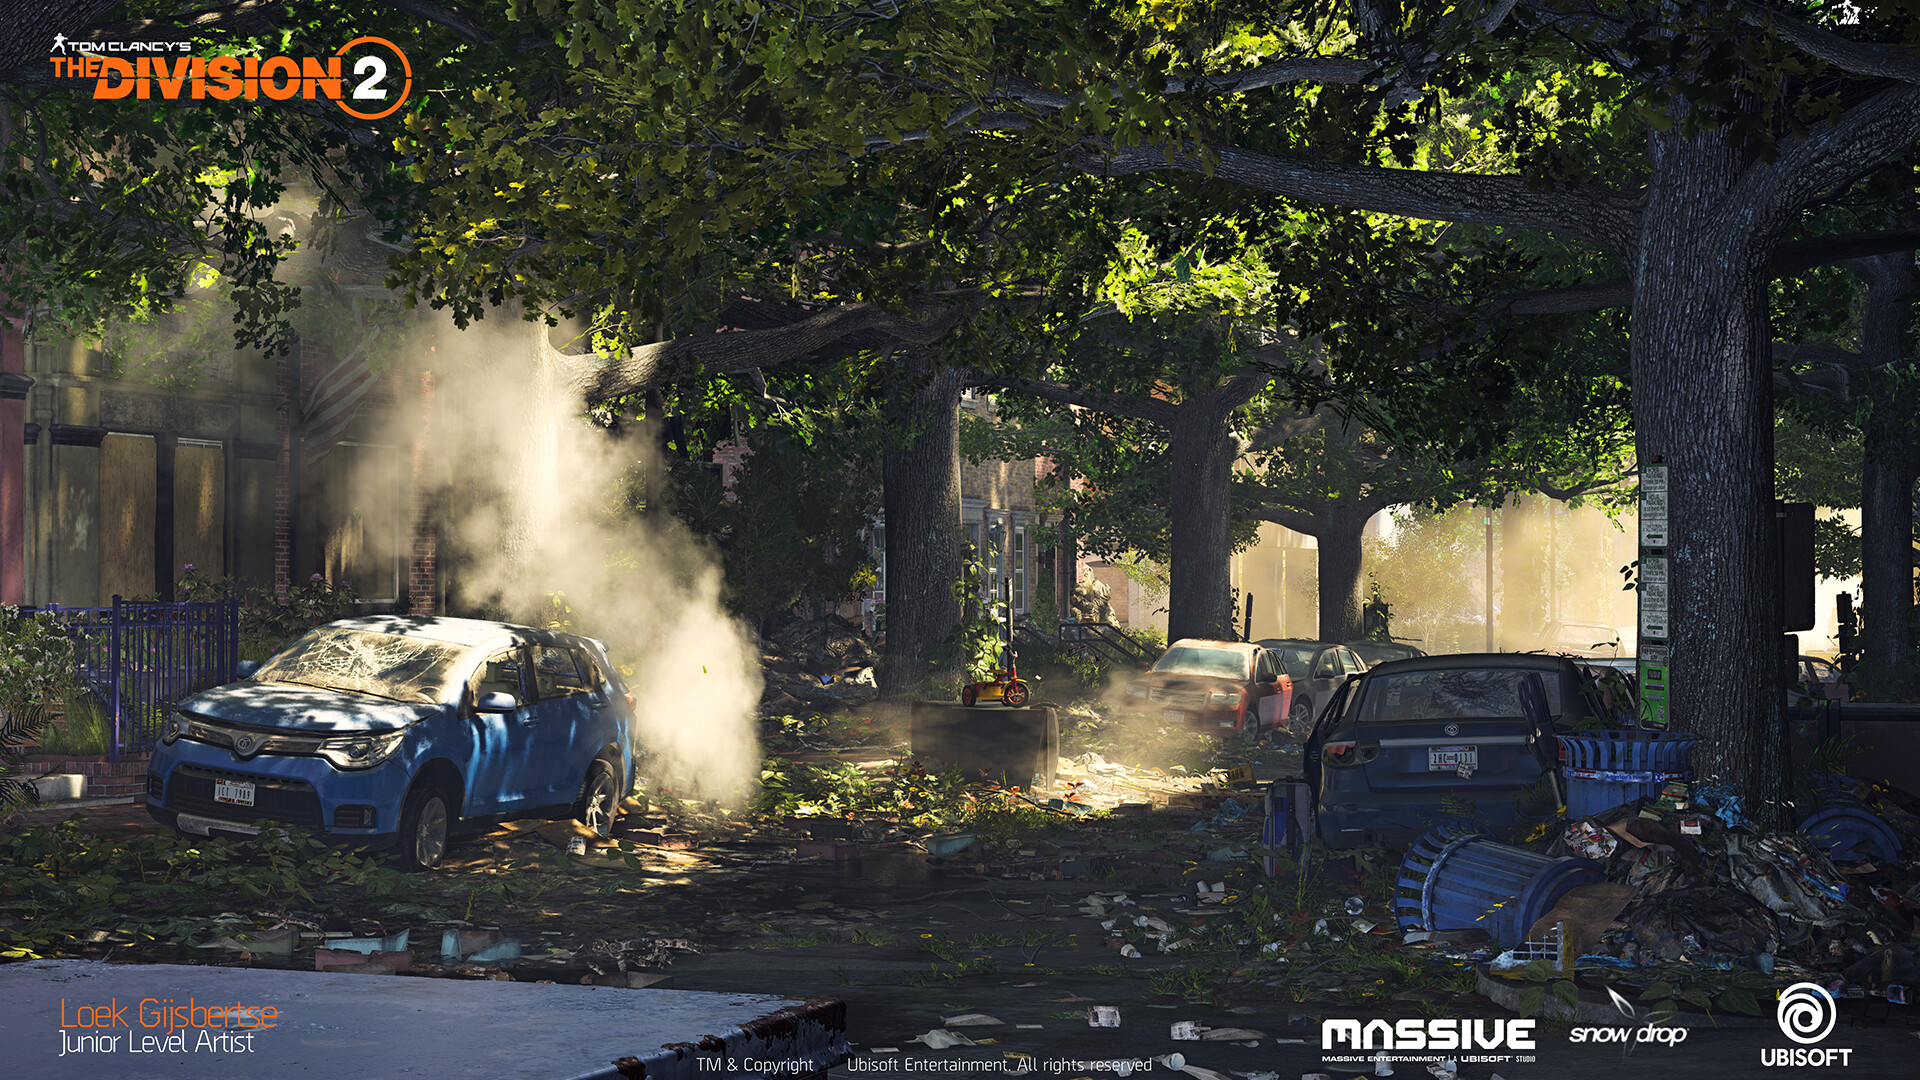 ArtStation - The Division 2 - Gamescom Trailer, Loek Gijsbertse